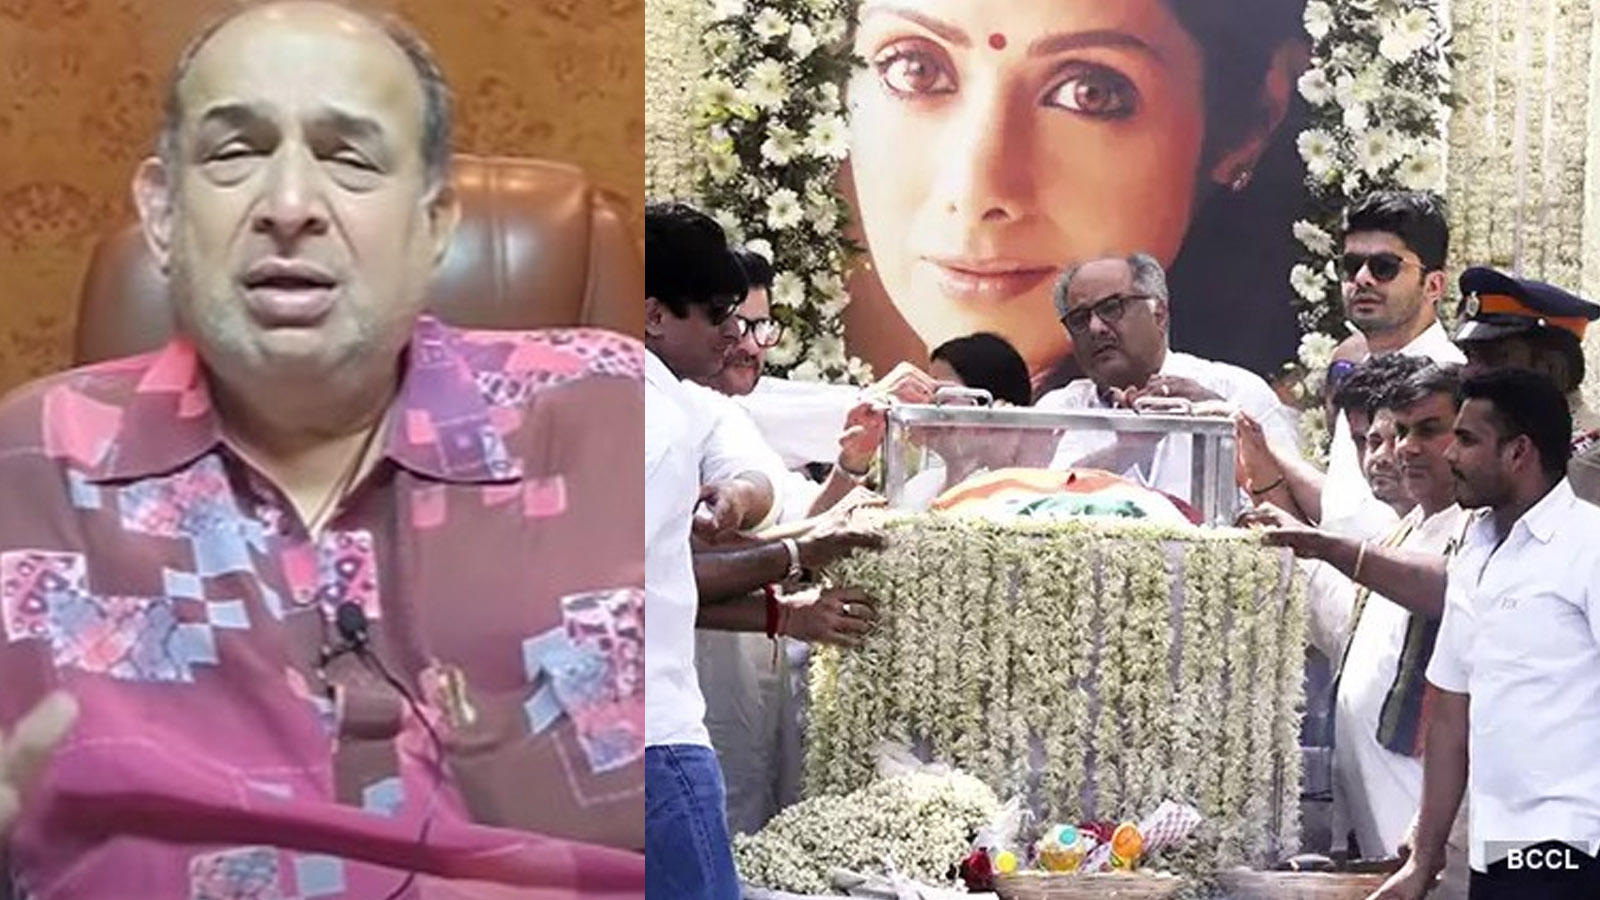 boney-kapoor-said-this-after-he-saw-the-mortal-remains-of-legendary-actress-sridevi